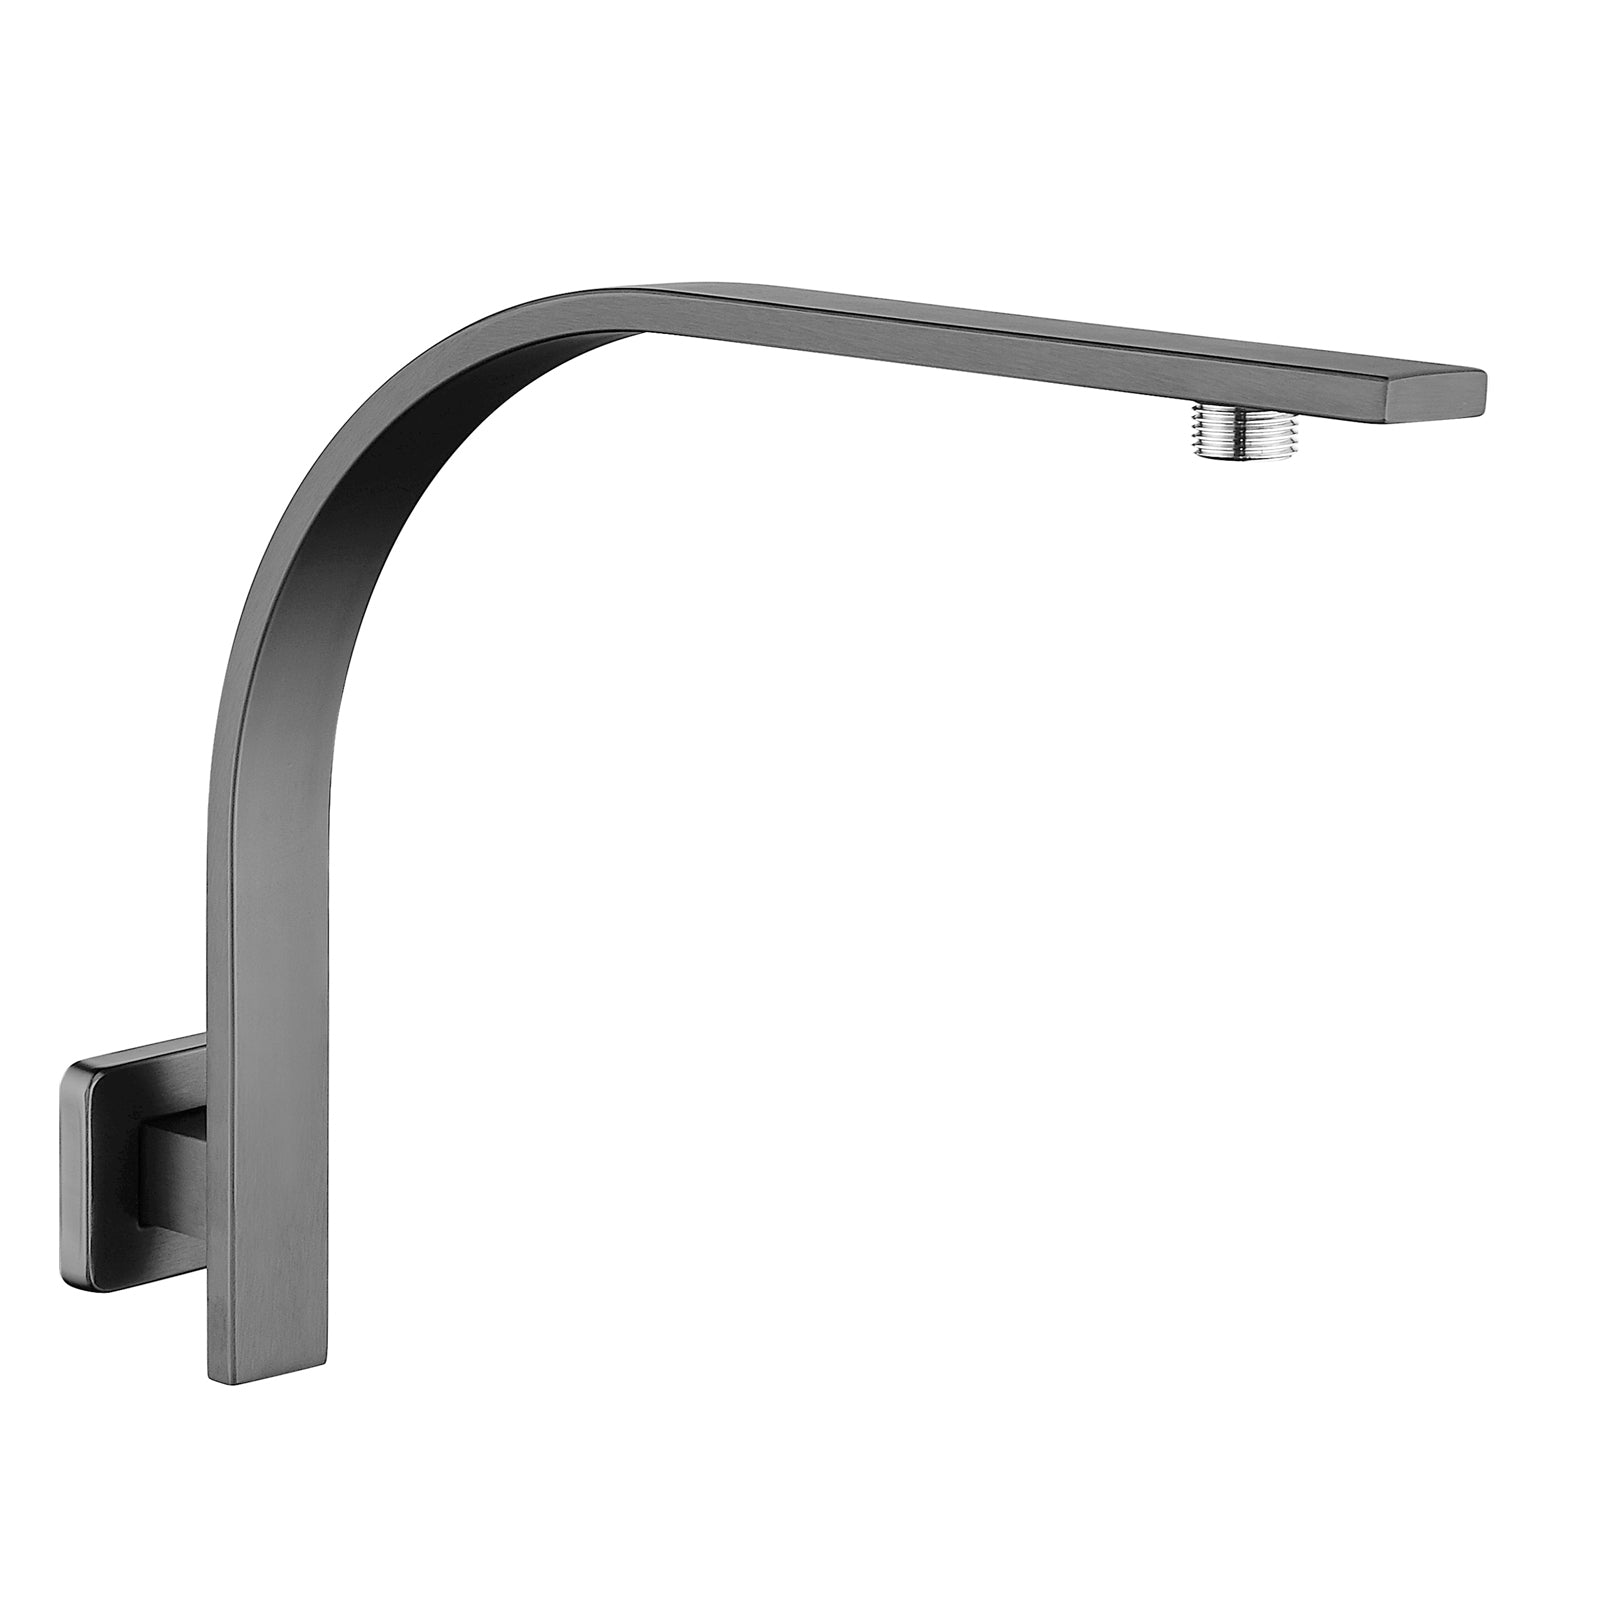 Cavallo Gun Metal Grey Gooseneck Wall Mounted Shower Arm